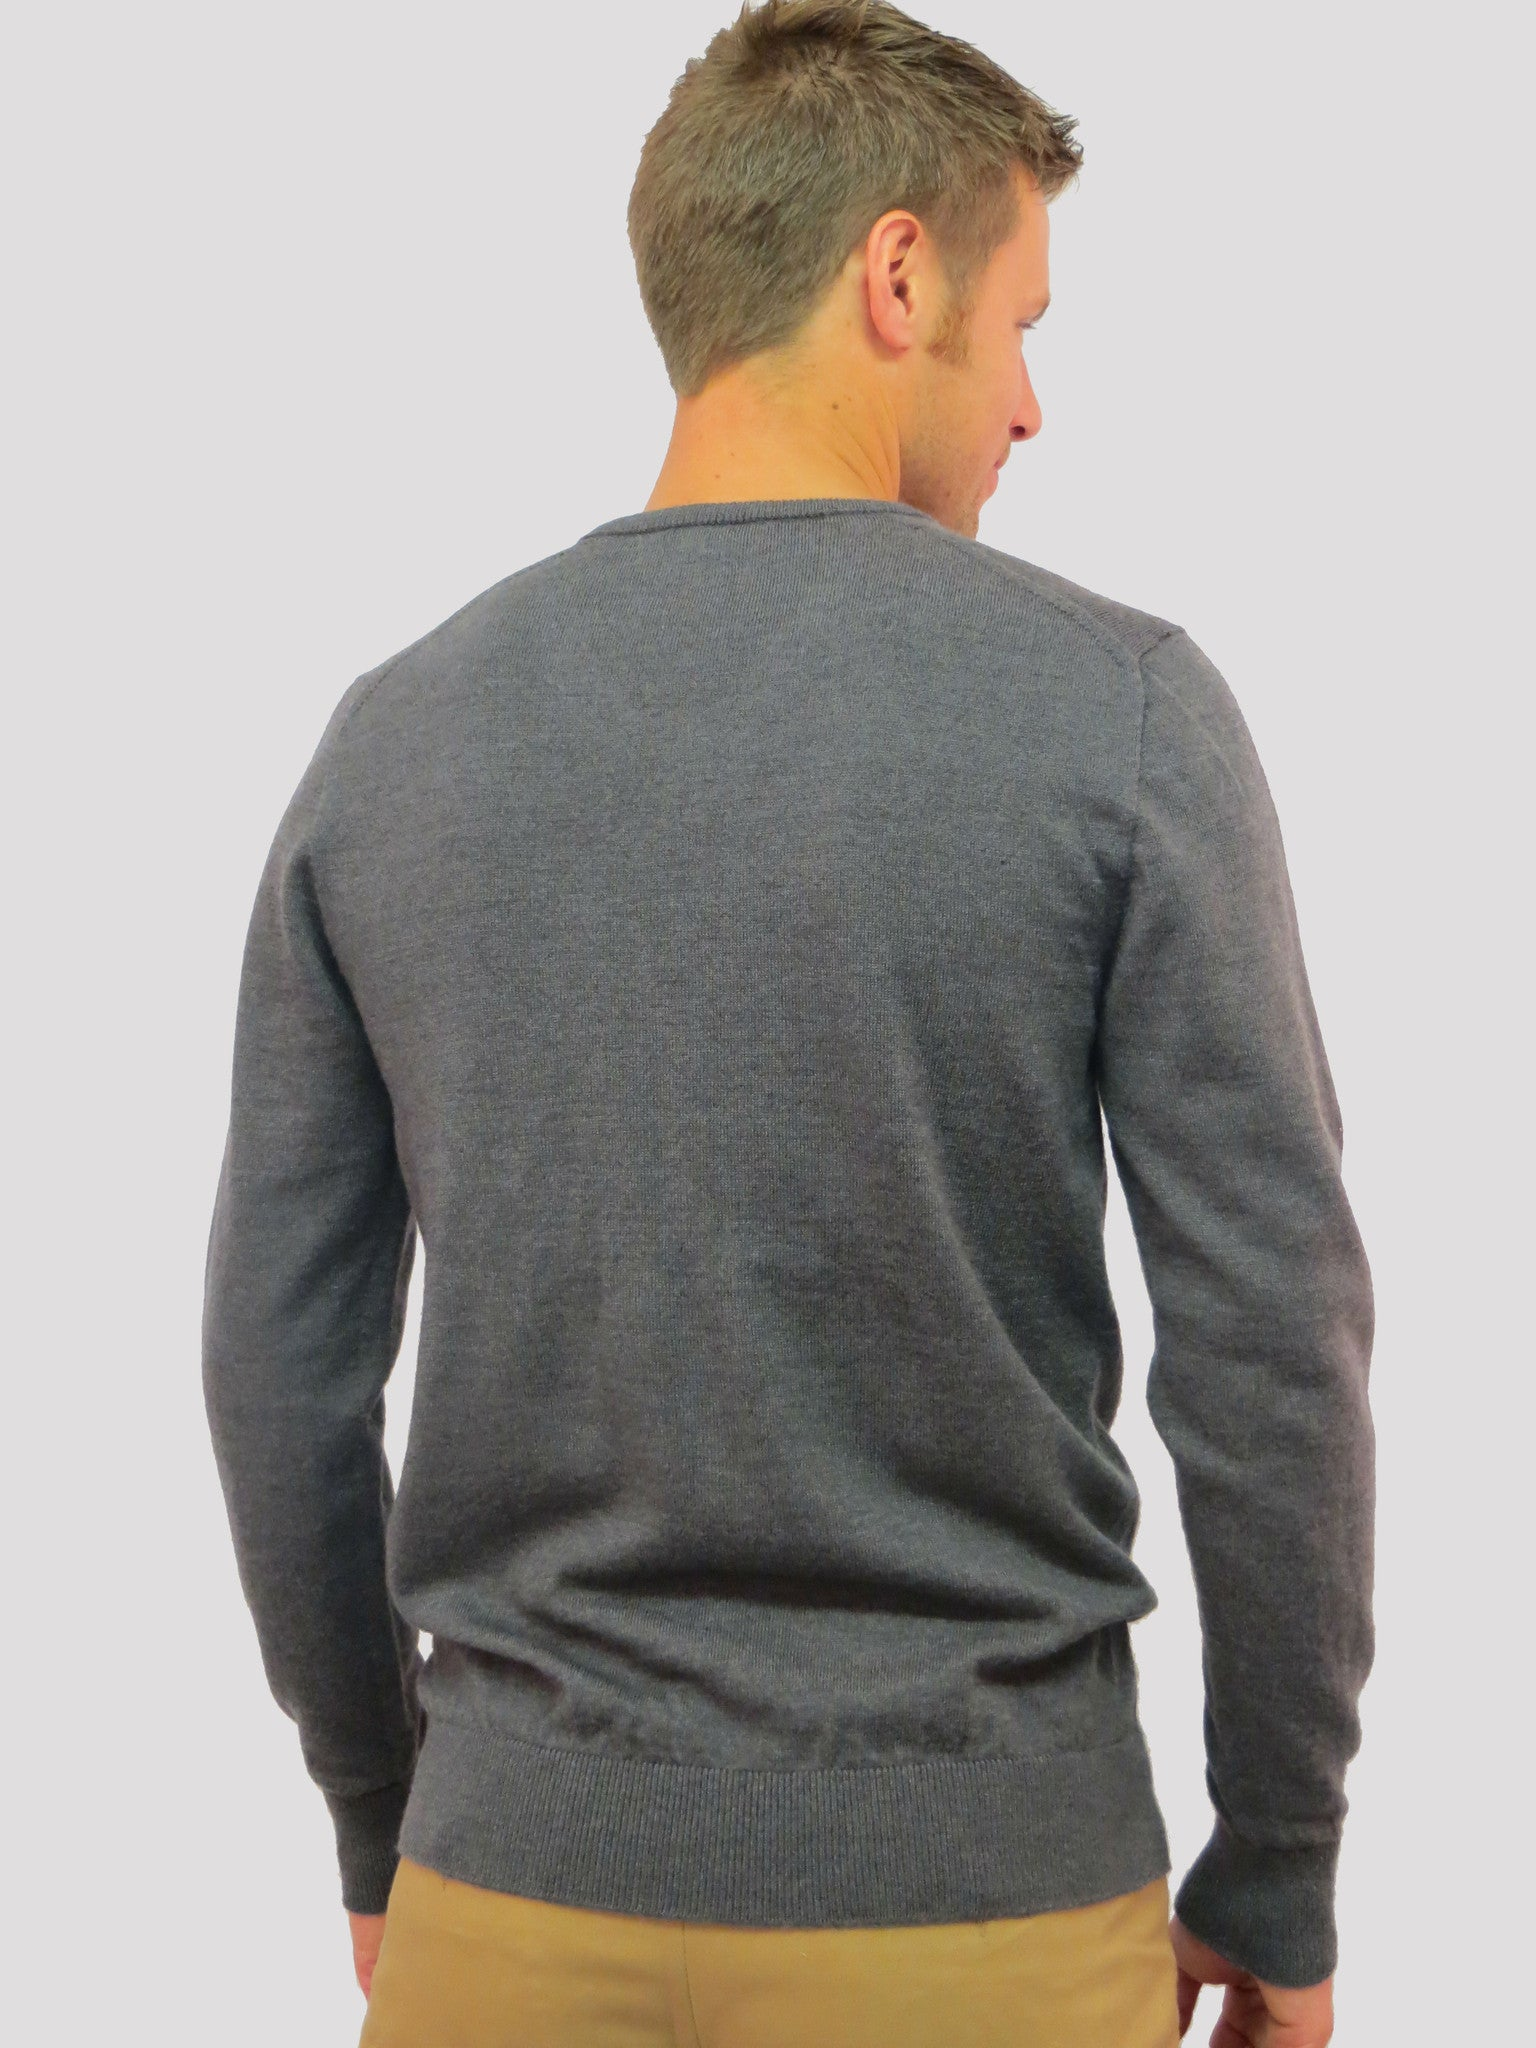 Airedale V-Neck Merino Wool Jumper/Sweater (Grey)